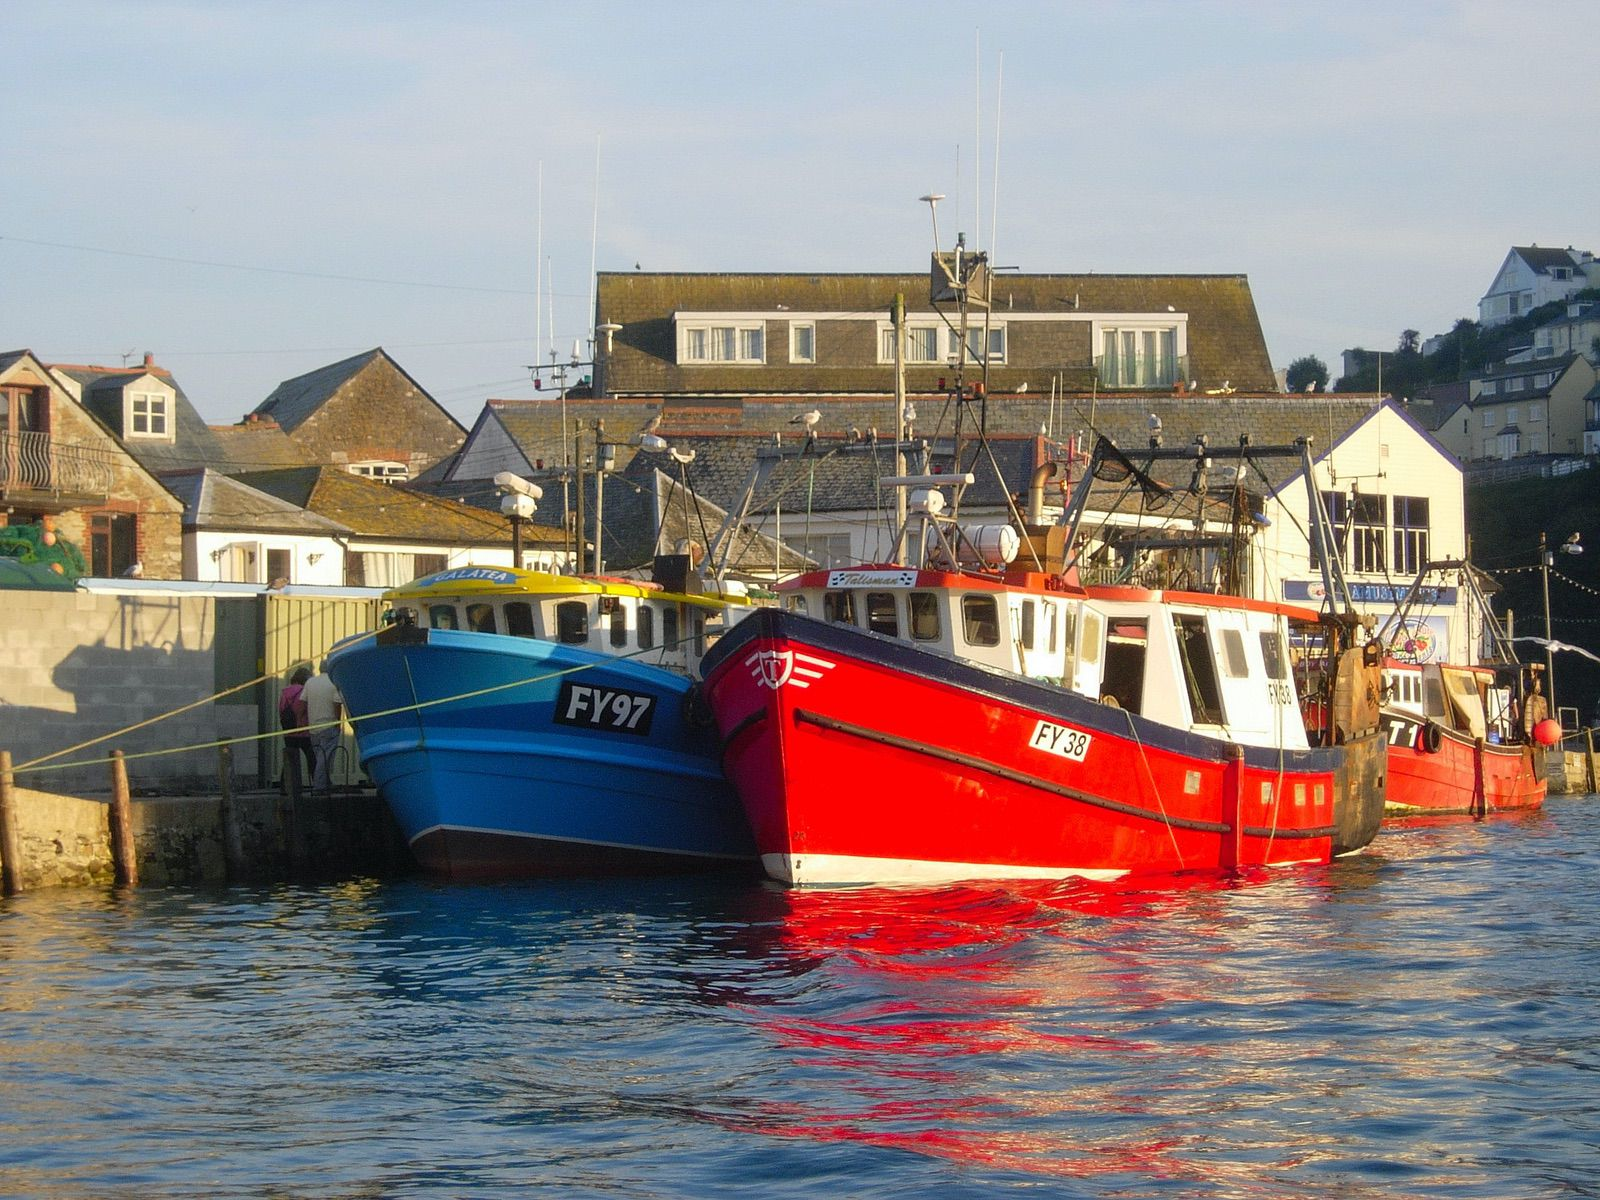 Fishing boats in Looe Harbour